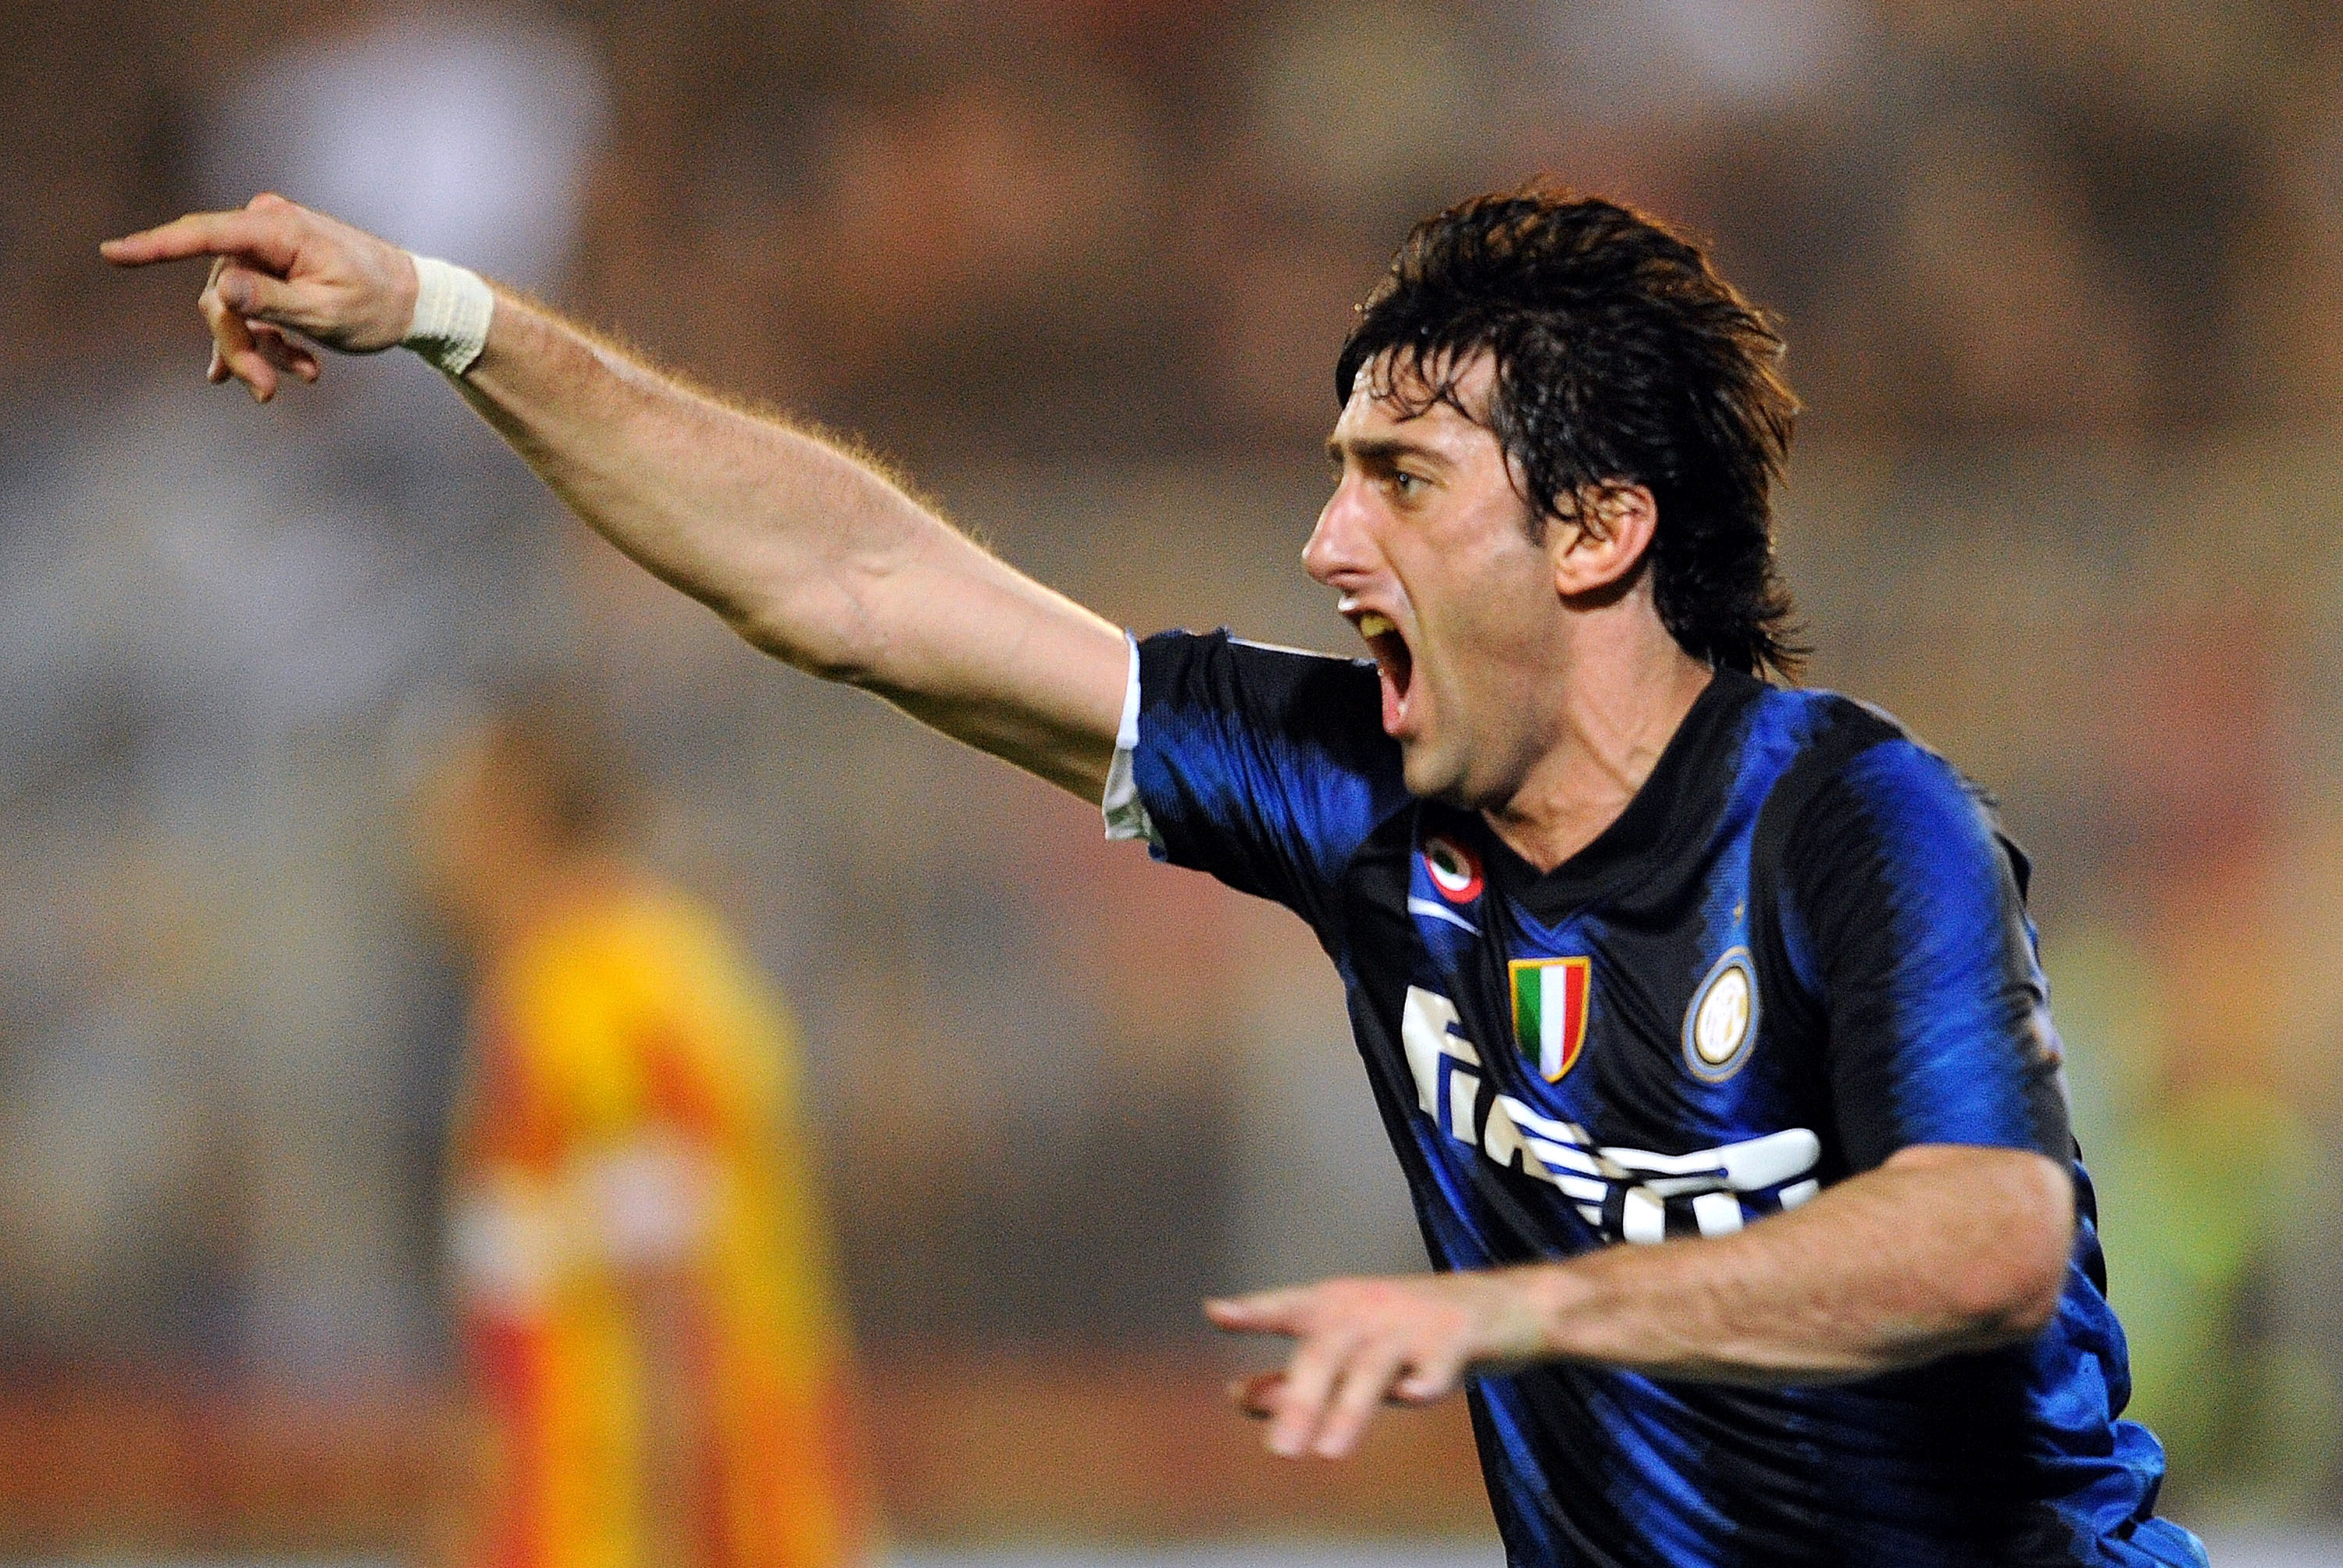 LECCE, ITALY - NOVEMBER 10:  Diego Milito of Inter celebrates after scoring the opening goal during the Serie A match between Lecce and Inter Milan at Stadio Via del Mare on November 10, 2010 in Lecce, Italy.  (Photo by Giuseppe Bellini/Getty Images)